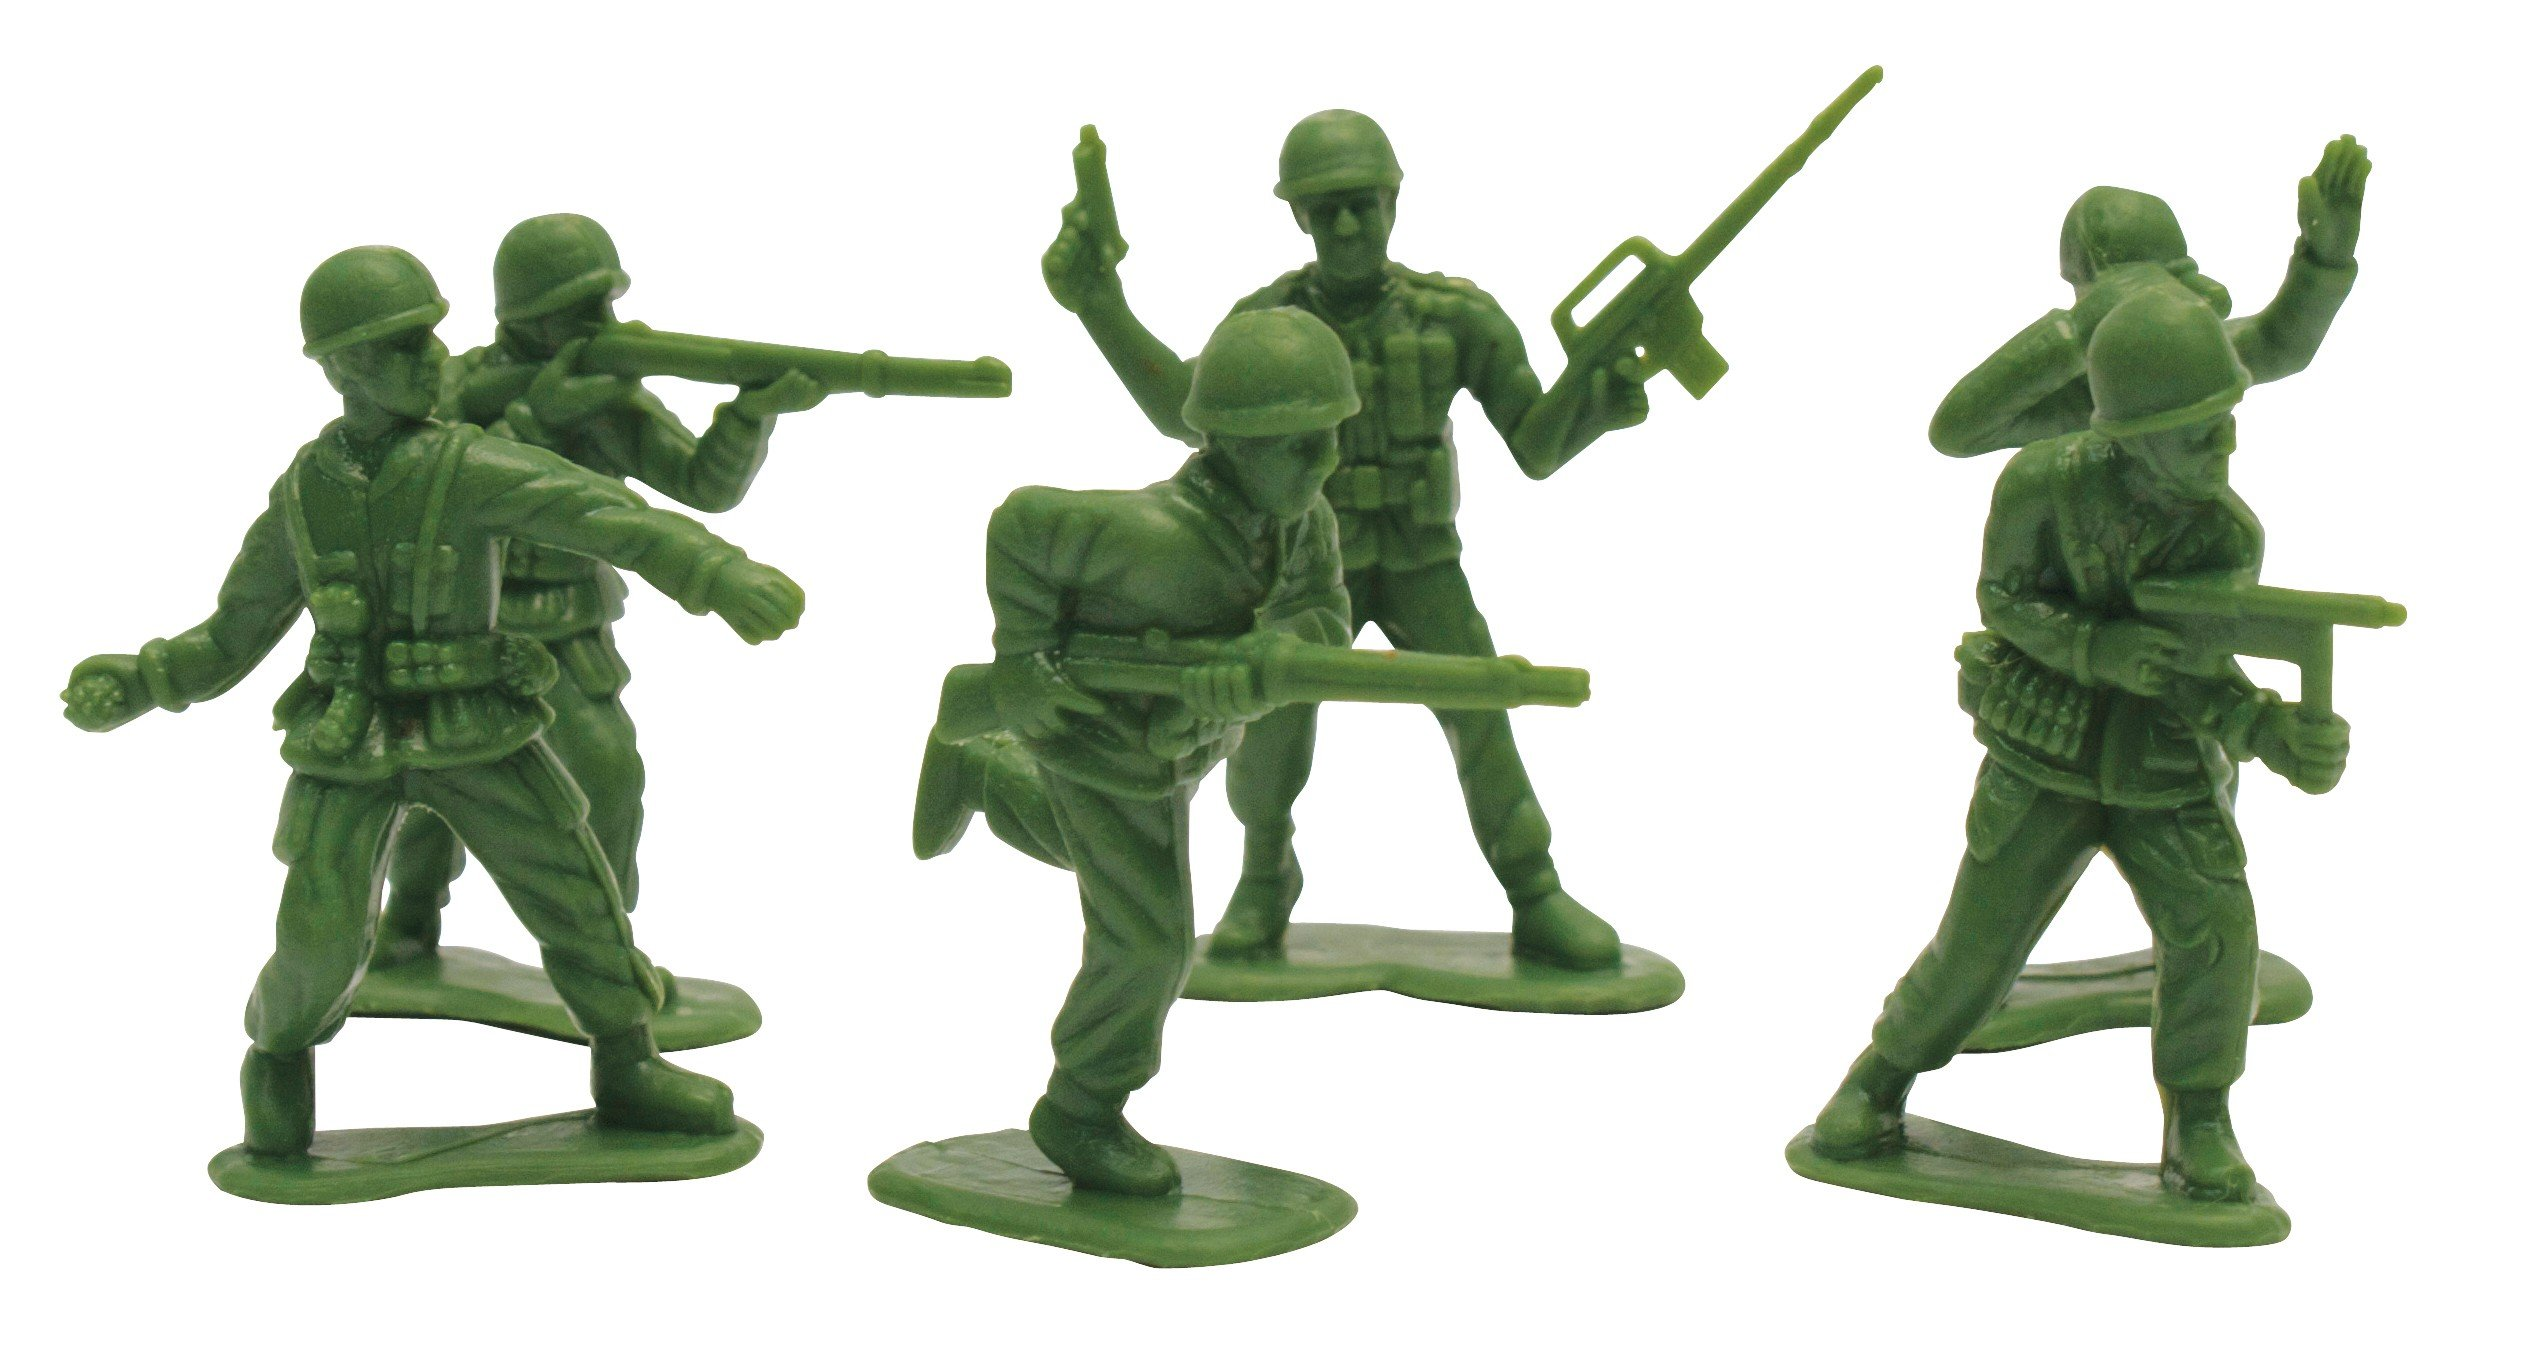 Soldier clipart army man Men Toys Military Green Soldier